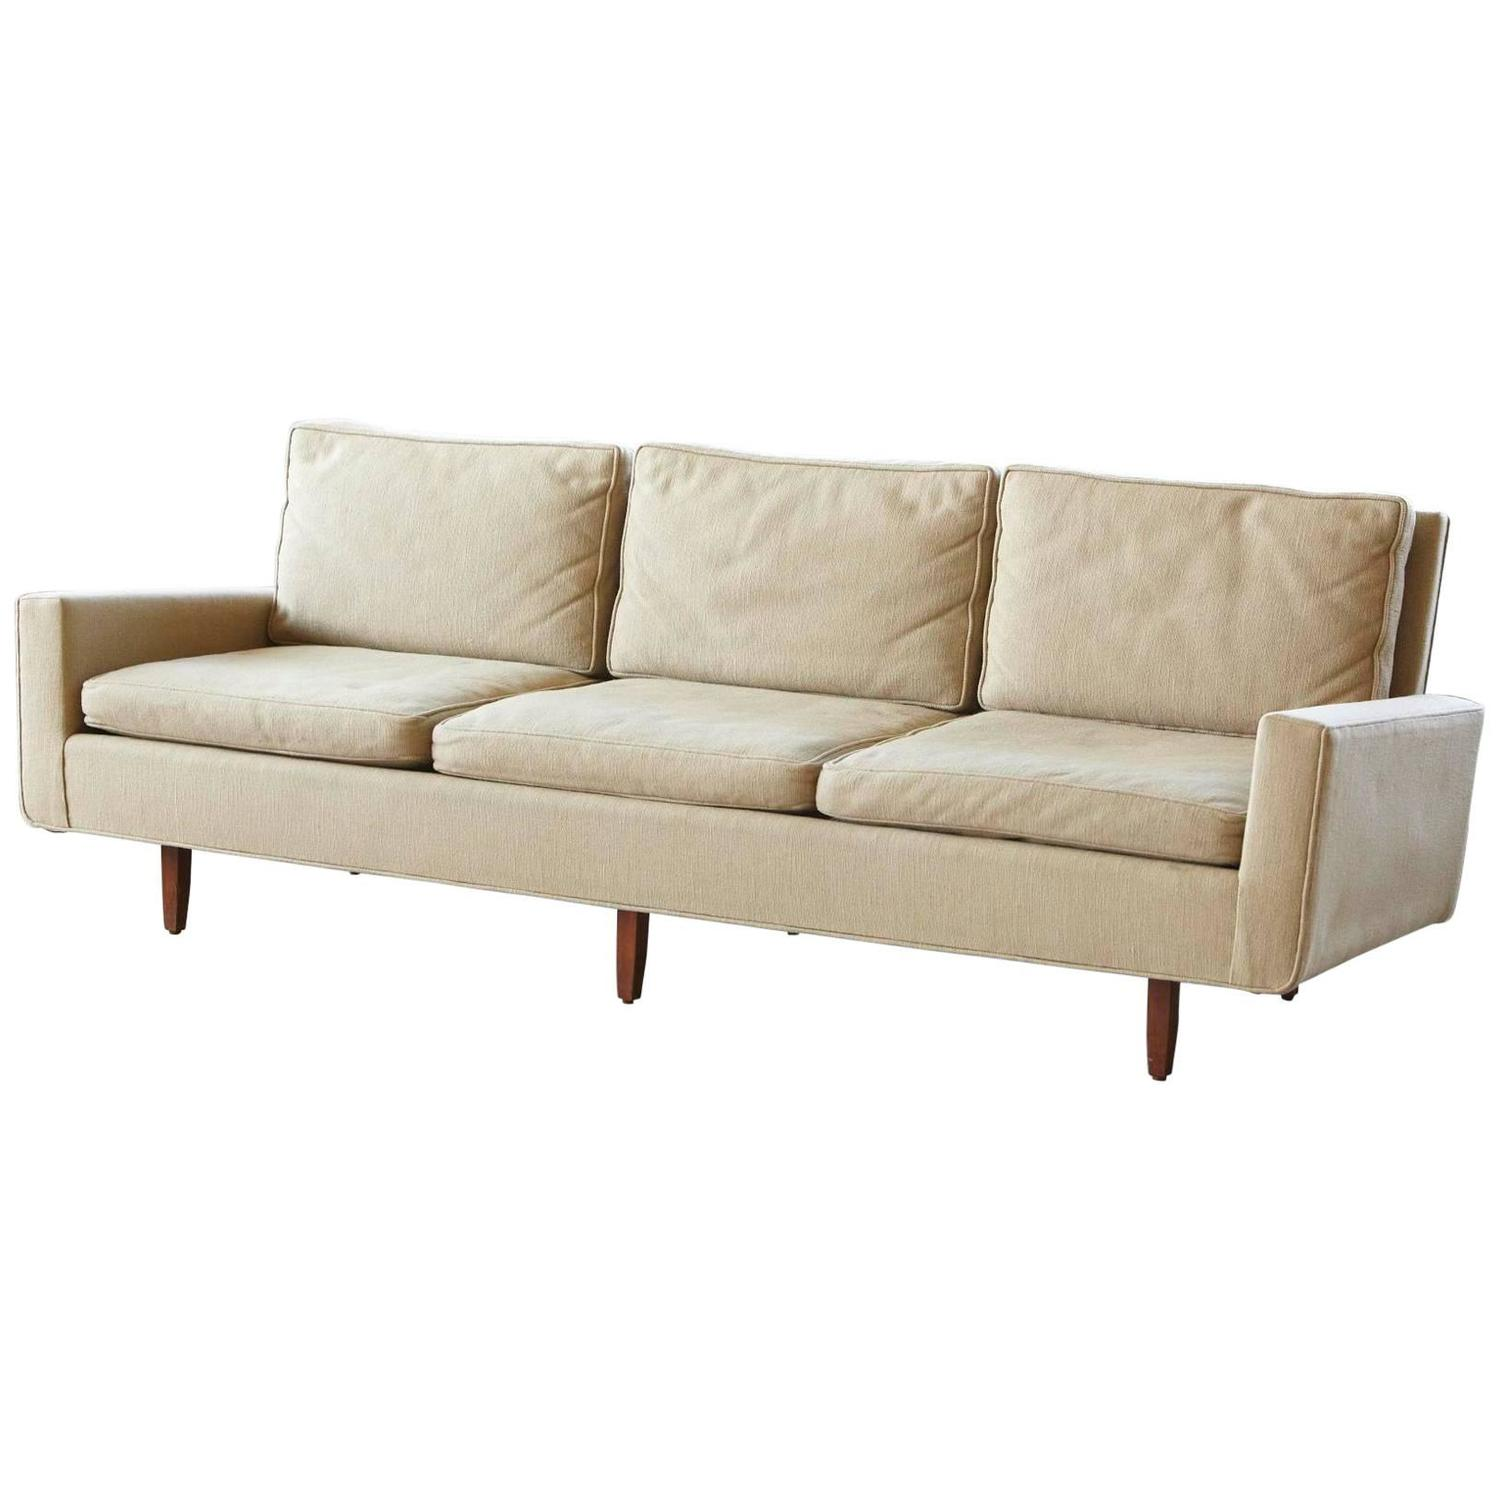 Early Florence Knoll Sofa Model 26d From 1967 With Original Fabric For Sale At 1stdibs